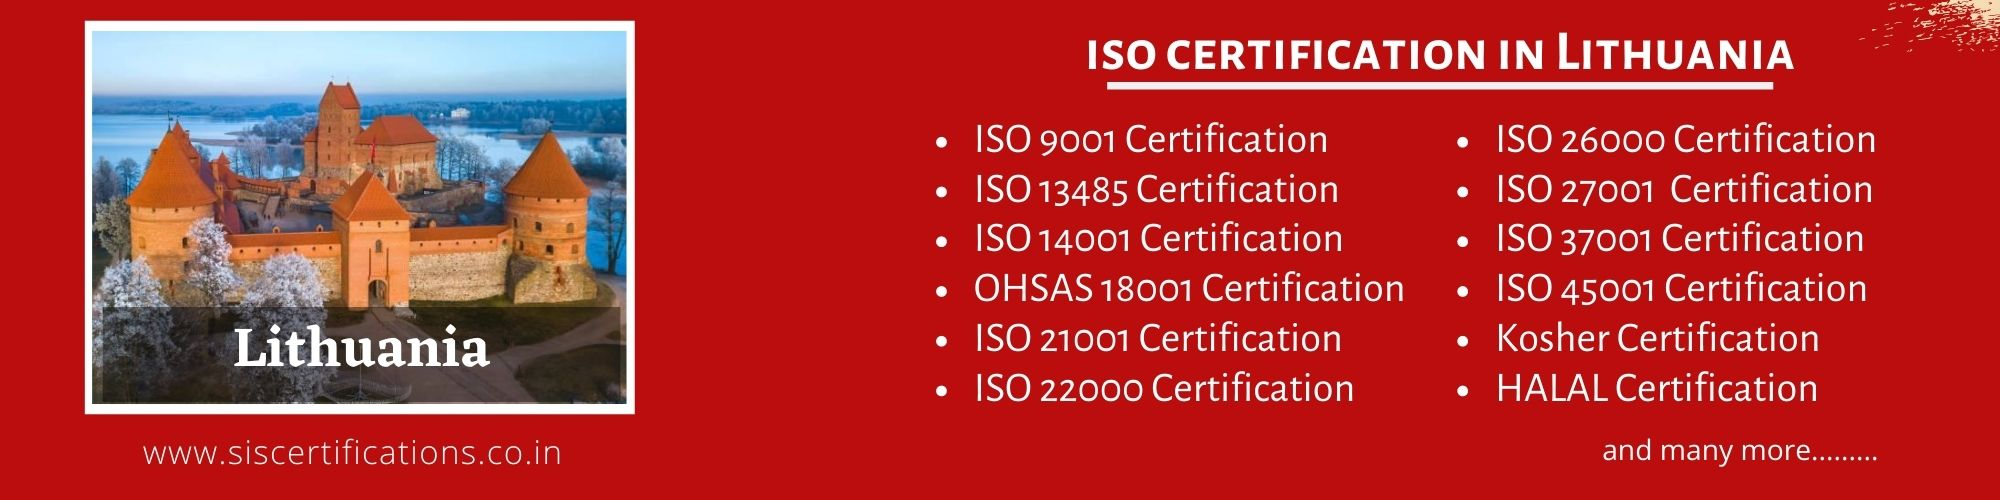 ISO Certification in Lithuania , ISO Certification in Lithuania